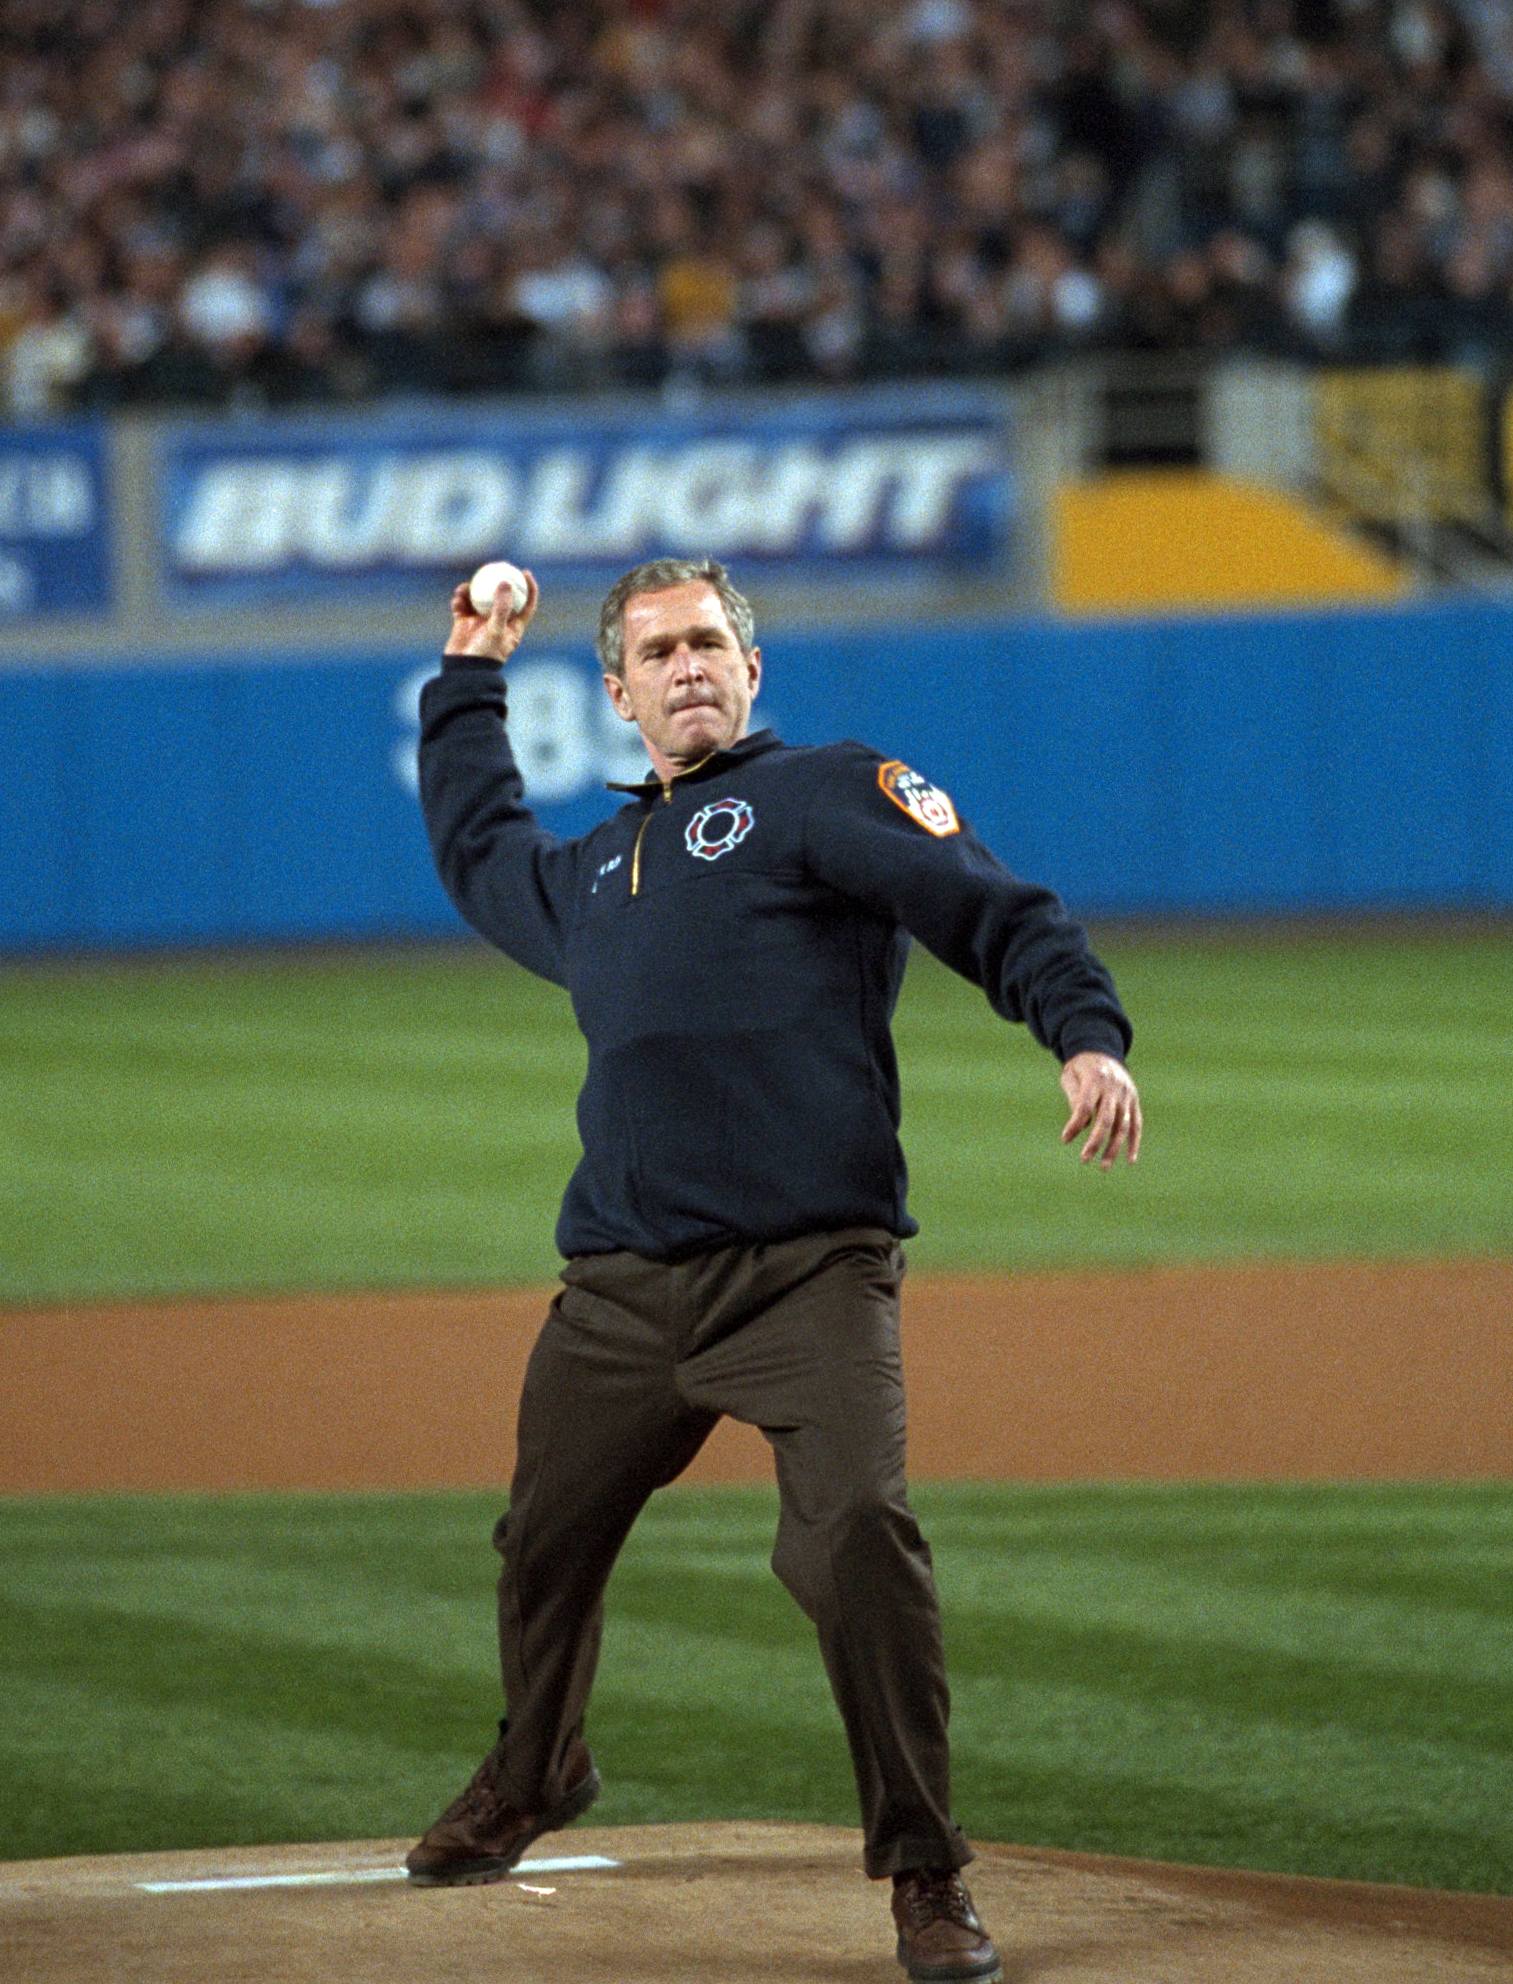 President Bush, 2001 World Series, Yankee Stadium